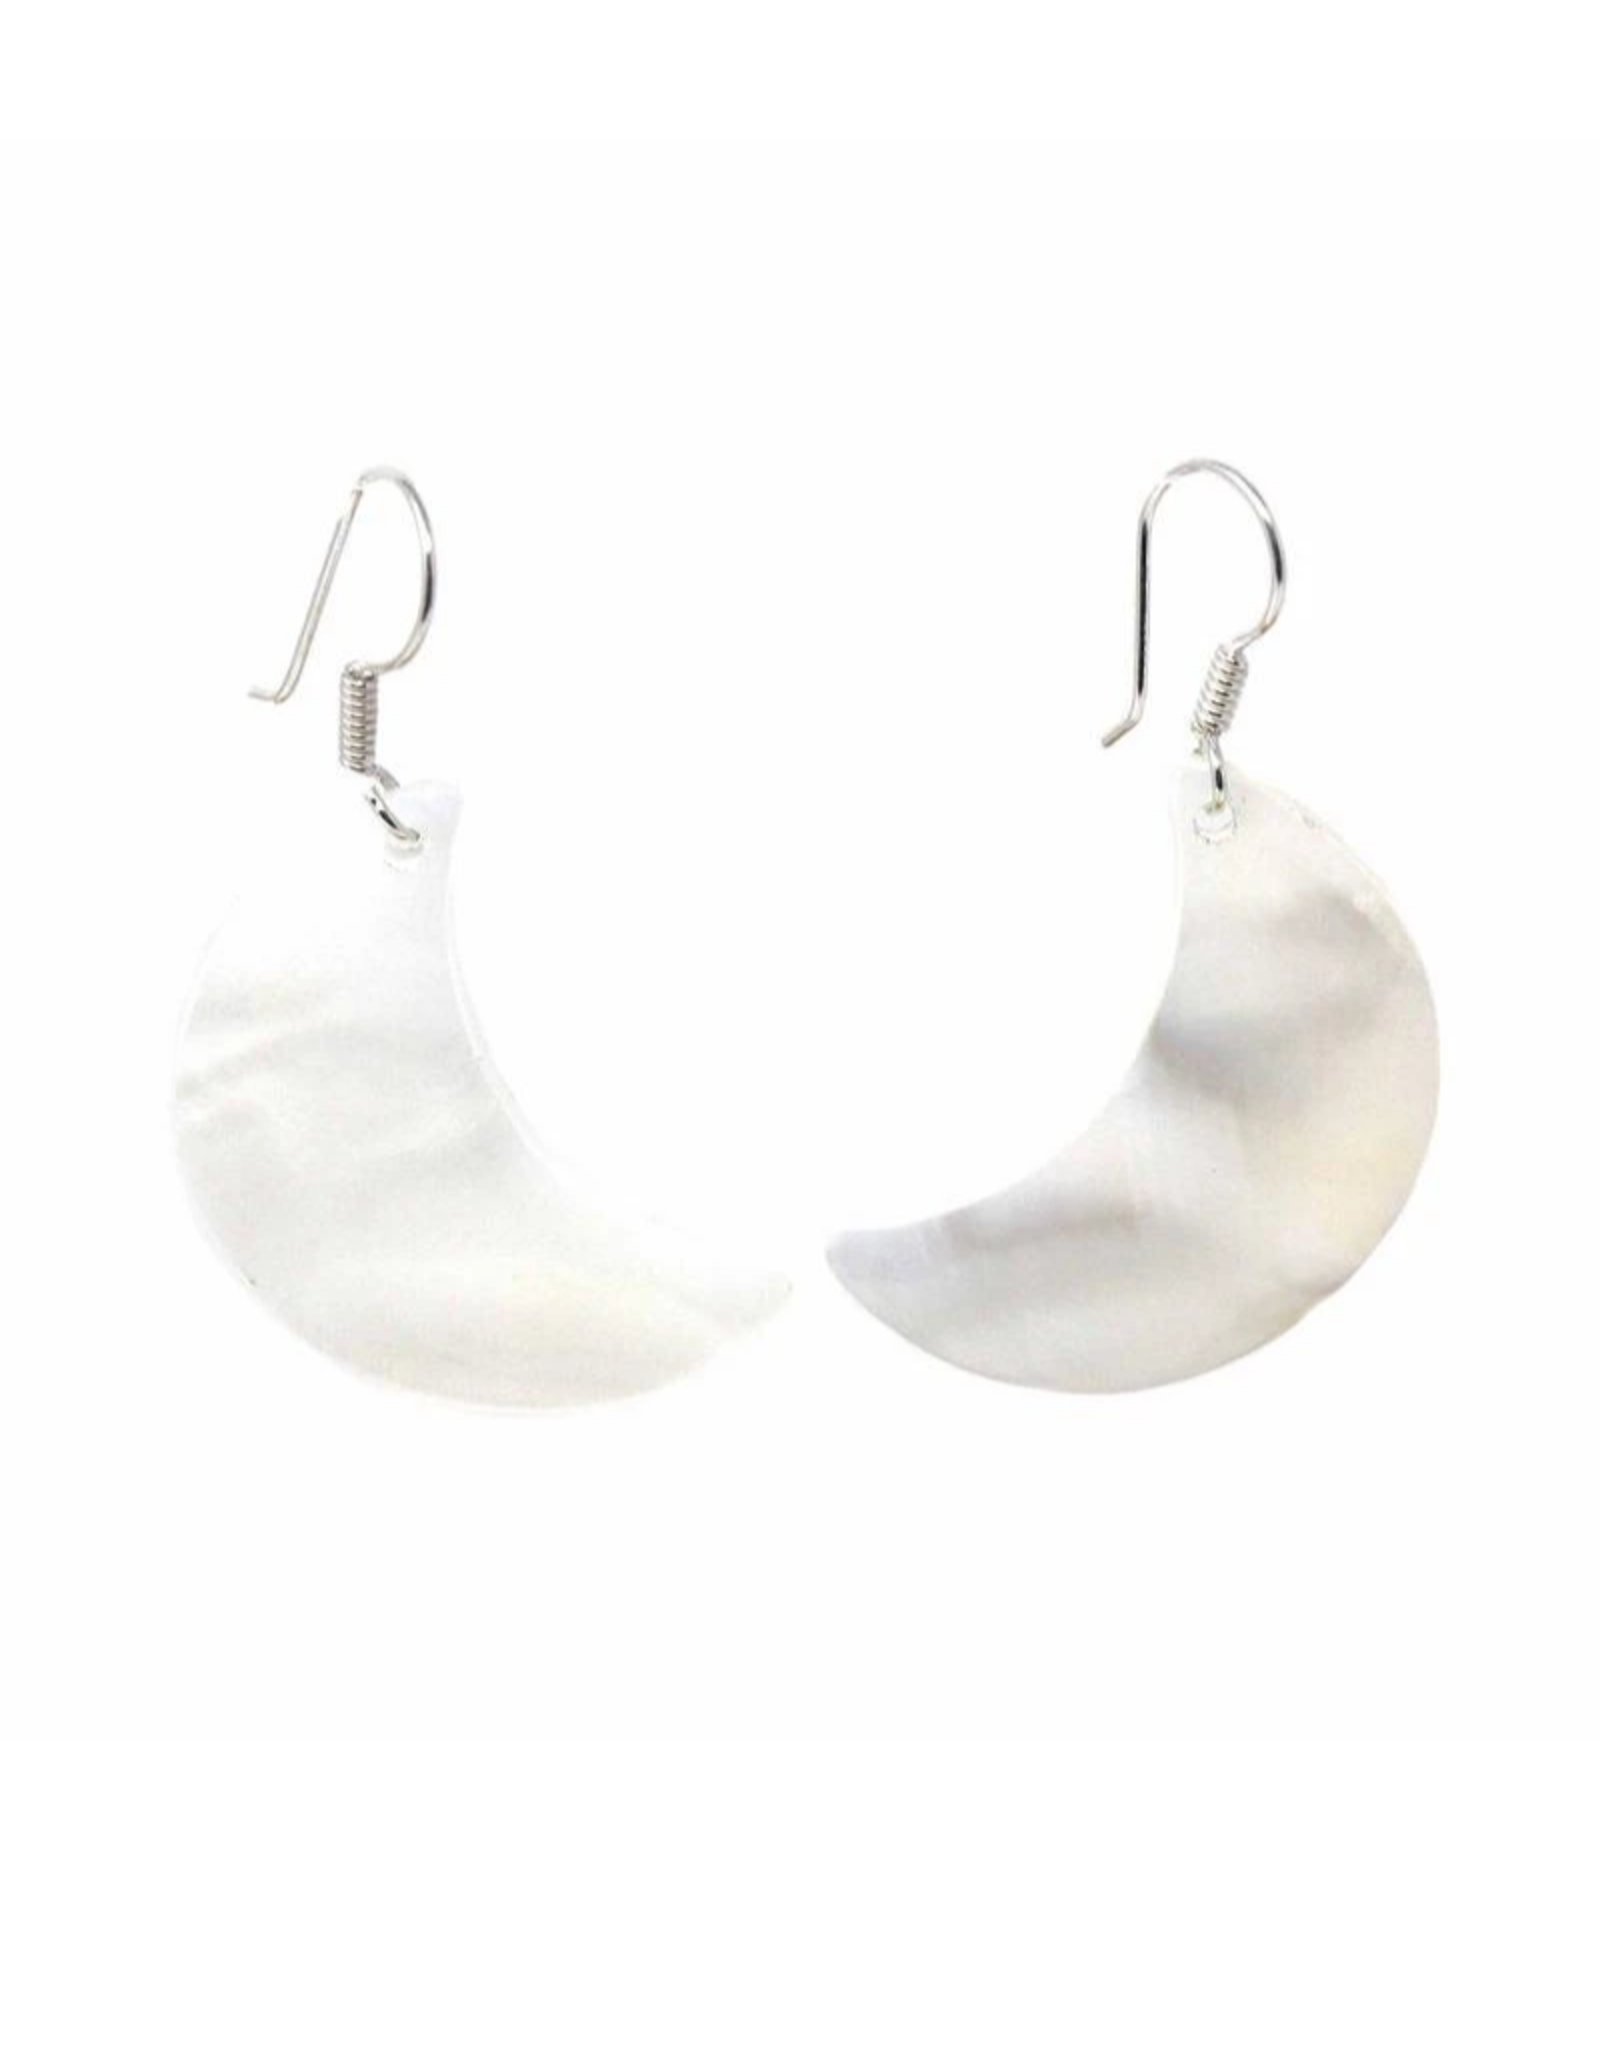 Global Crafts Earrings, Mother of Pearl Crescent Moon